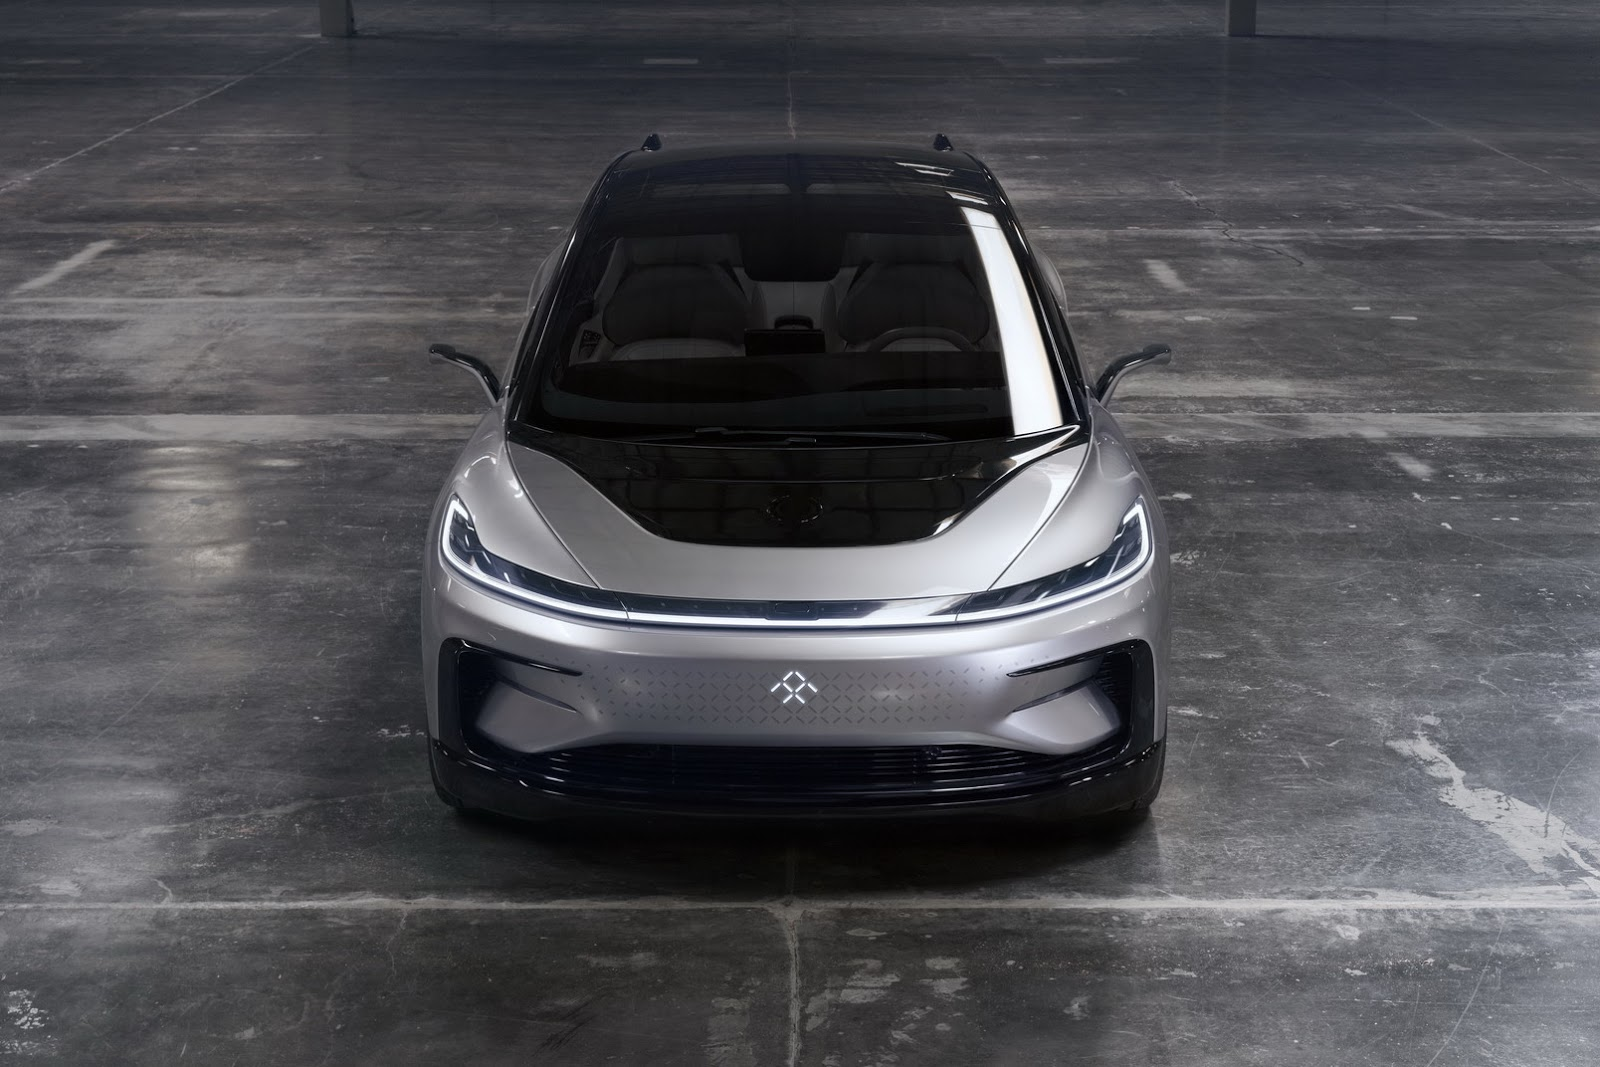 Faraday Future FF 91 (31)